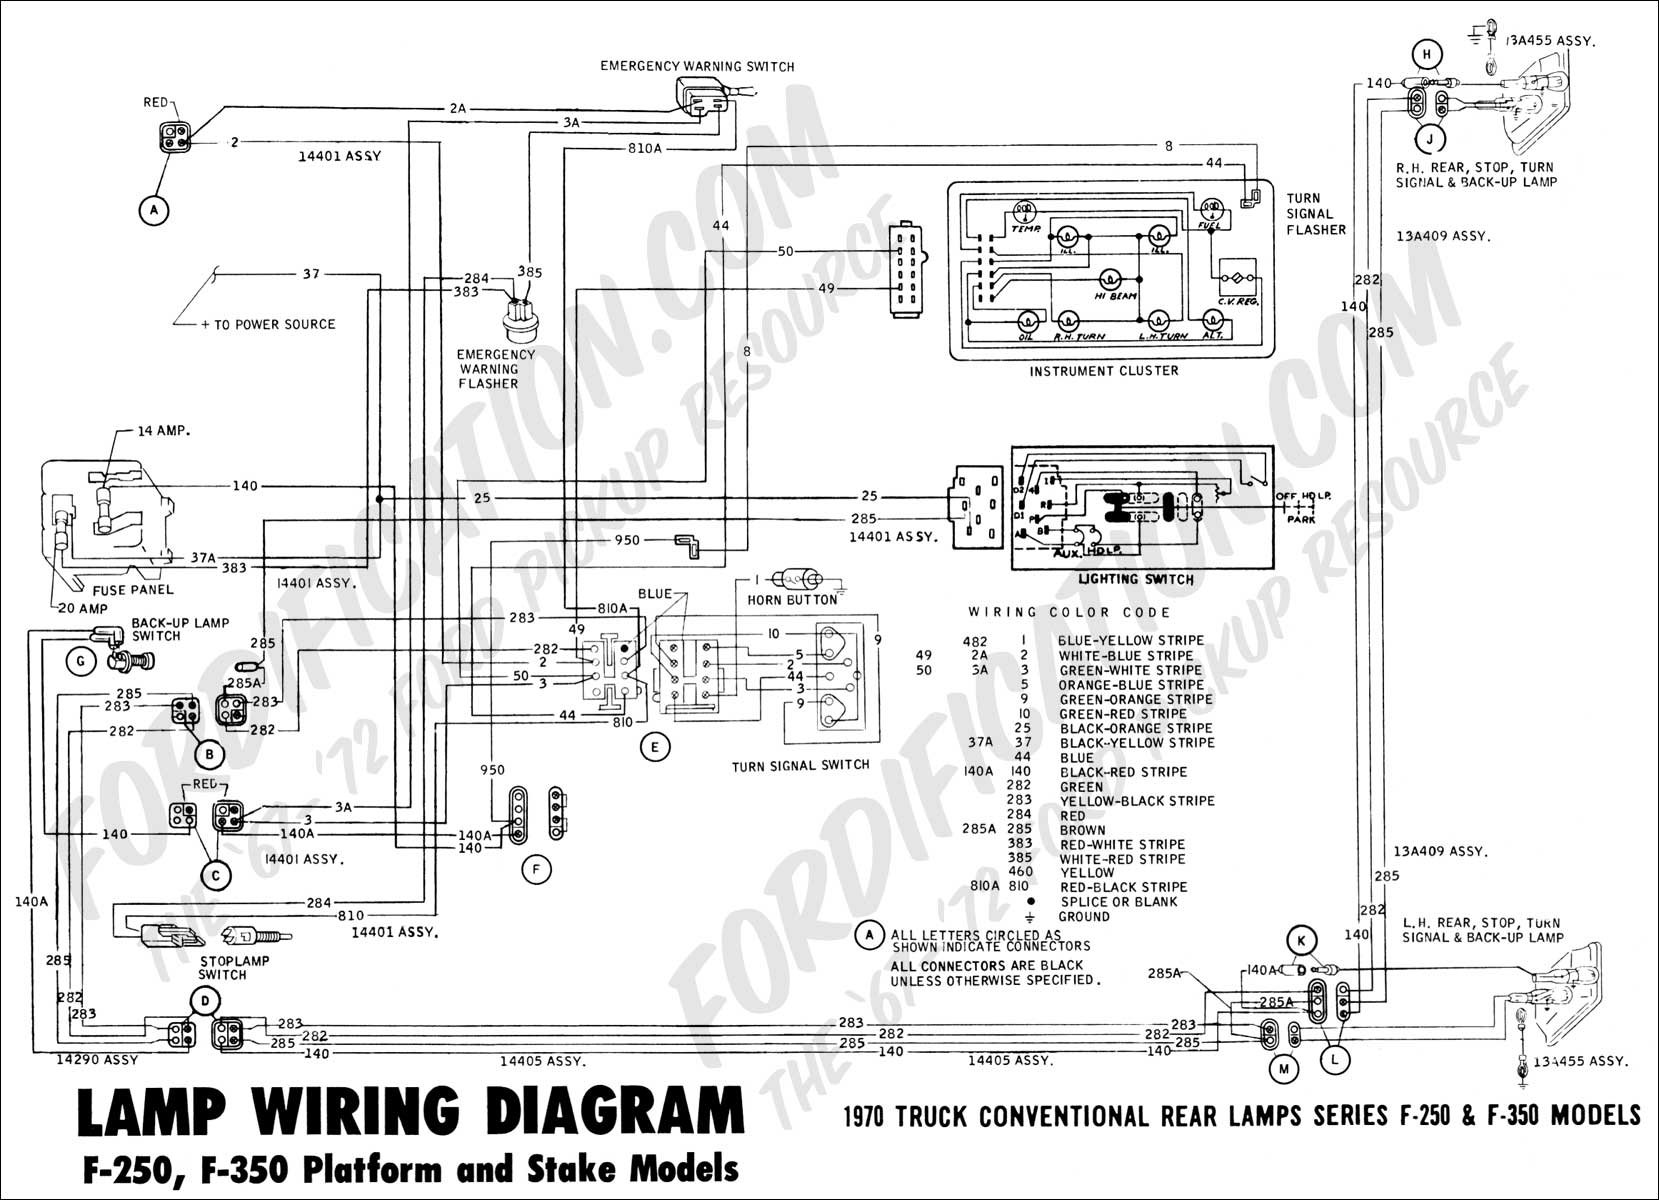 ford truck technical drawings and schematics - section h ... 2000 f150 tail lights wiring harness koito tail lights wiring diagram #14